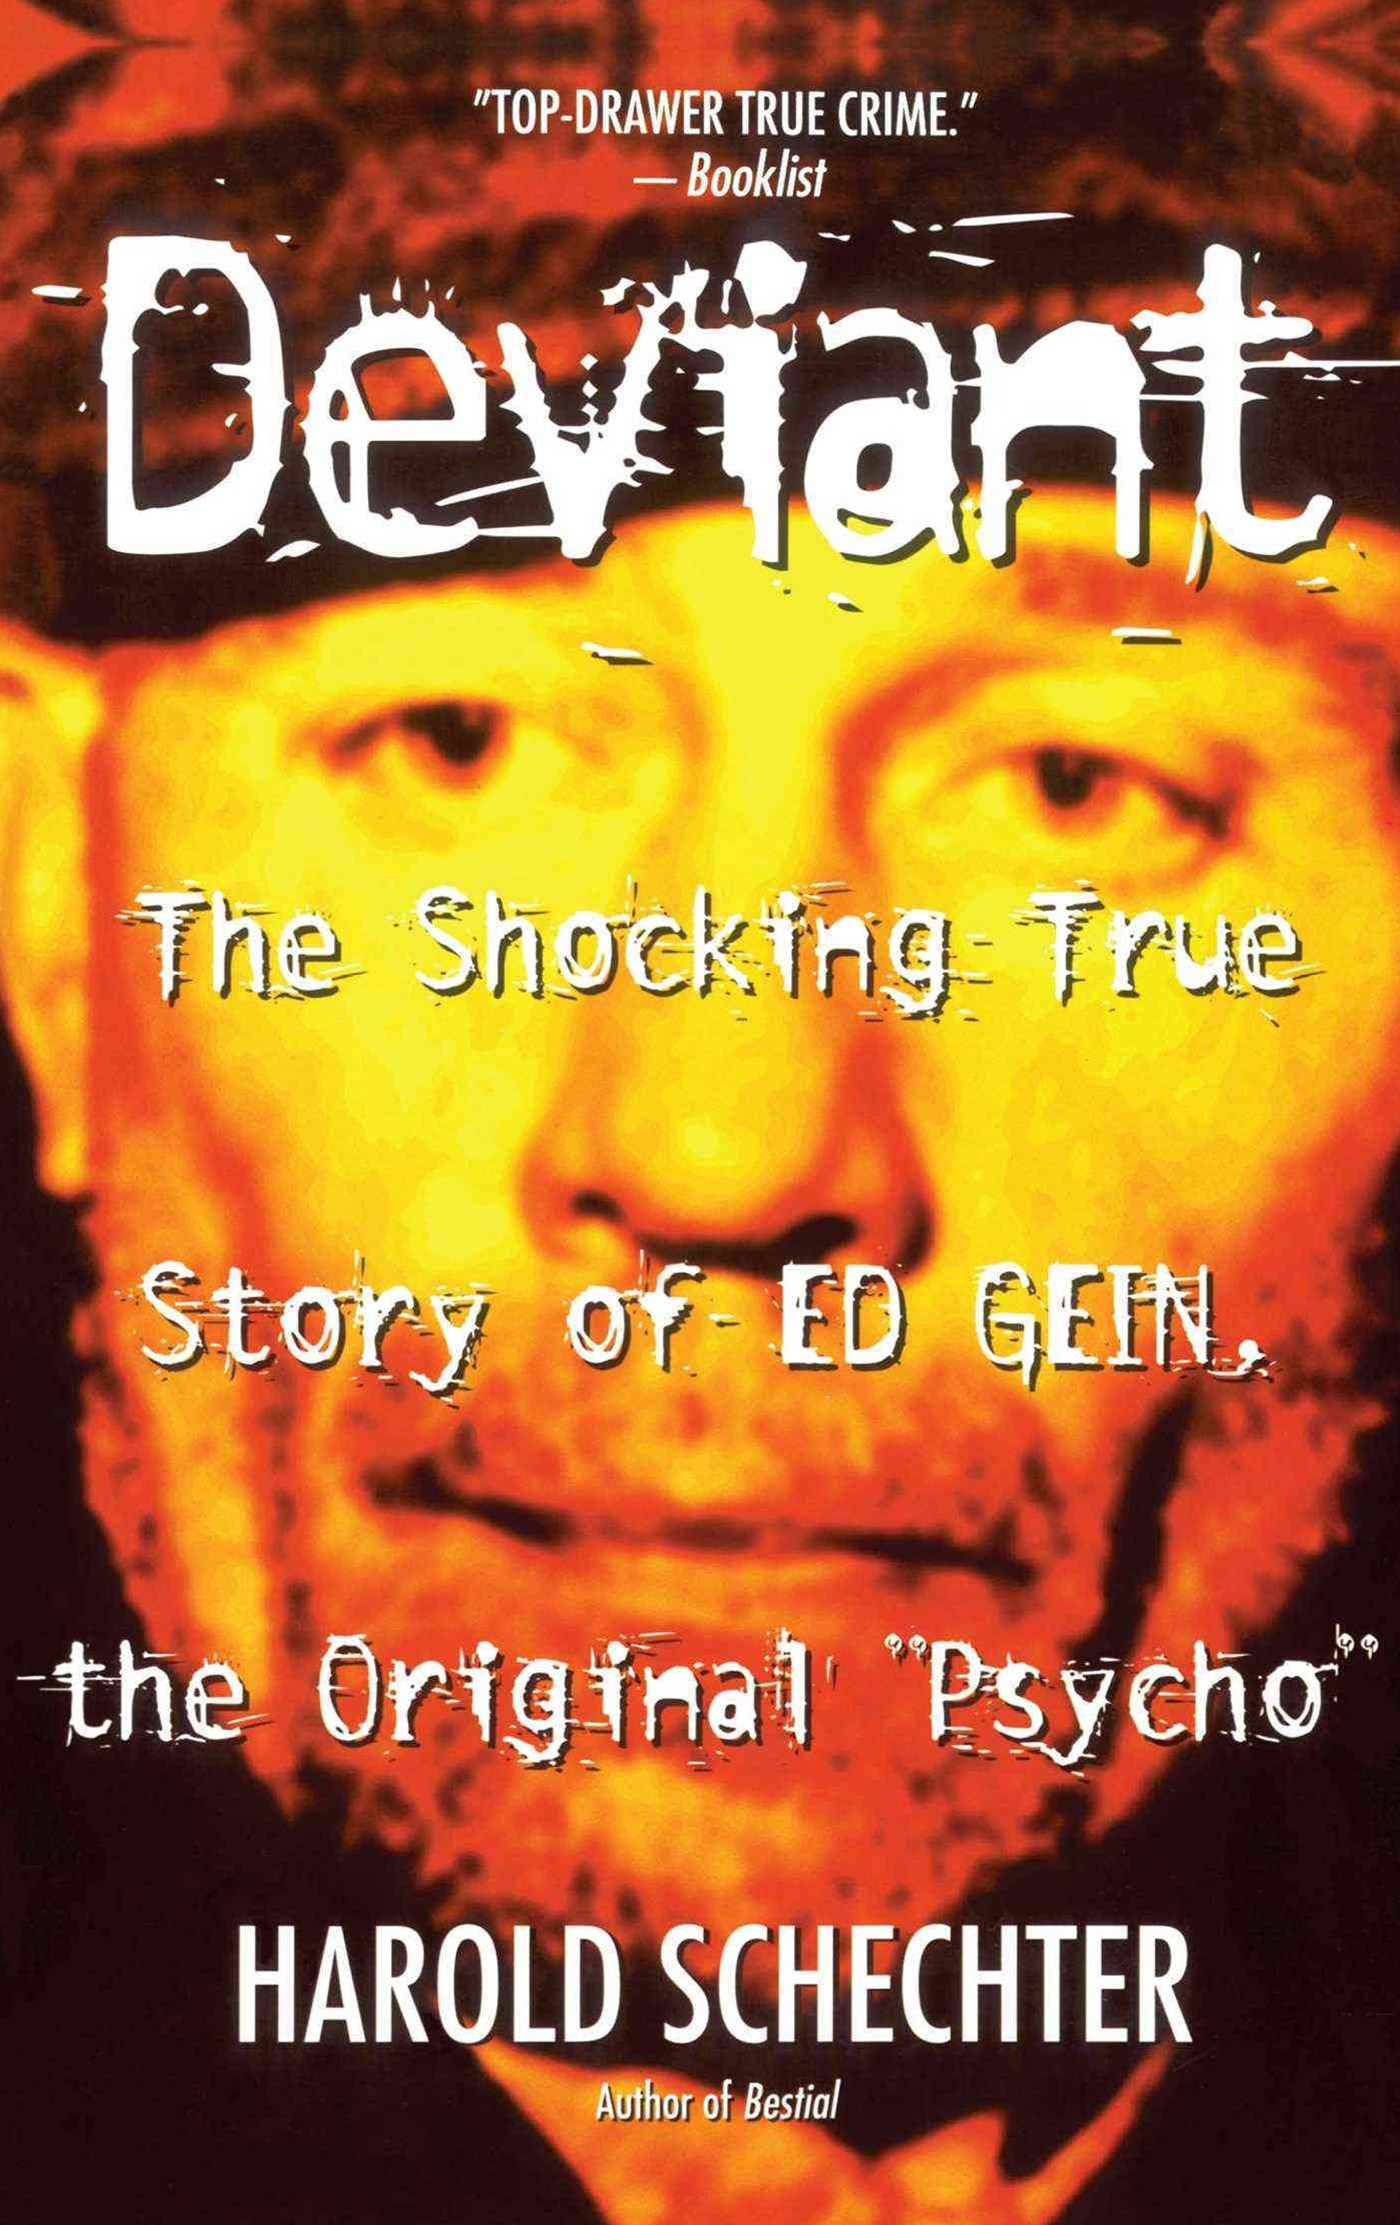 &quote;Deviant: True Story of Ed Gein, The Original Psycho  &quote;